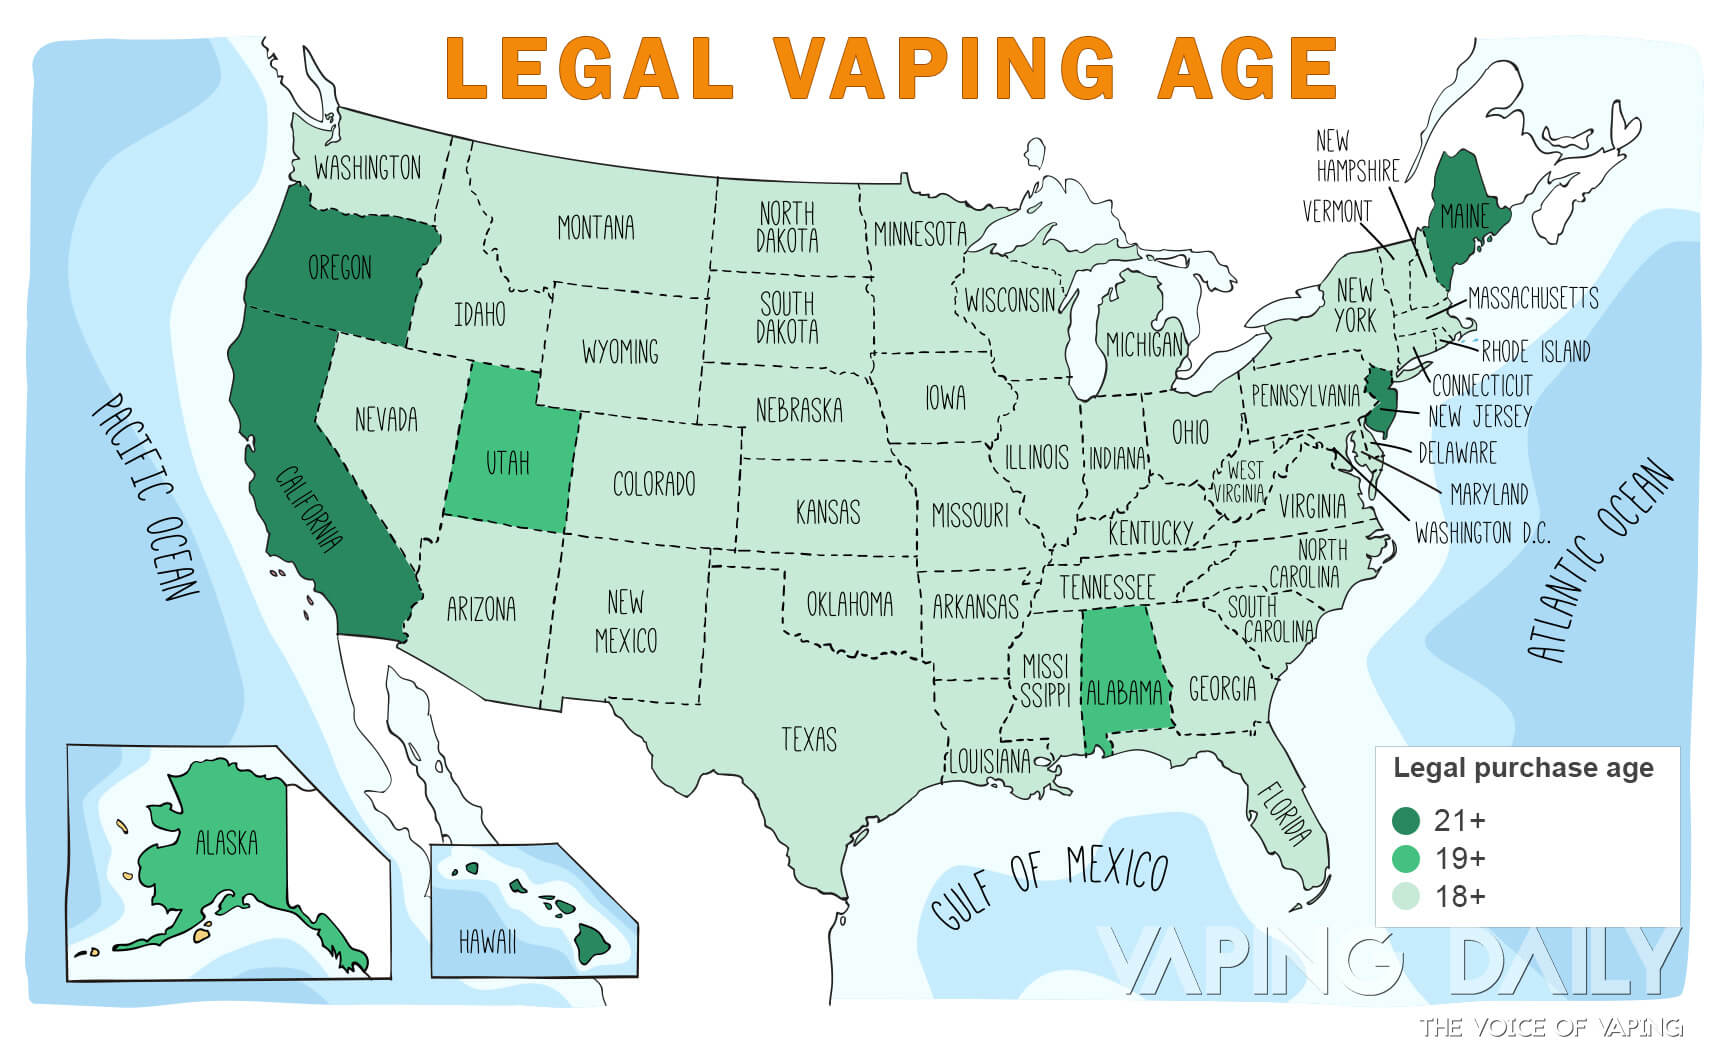 legal vaping age by states